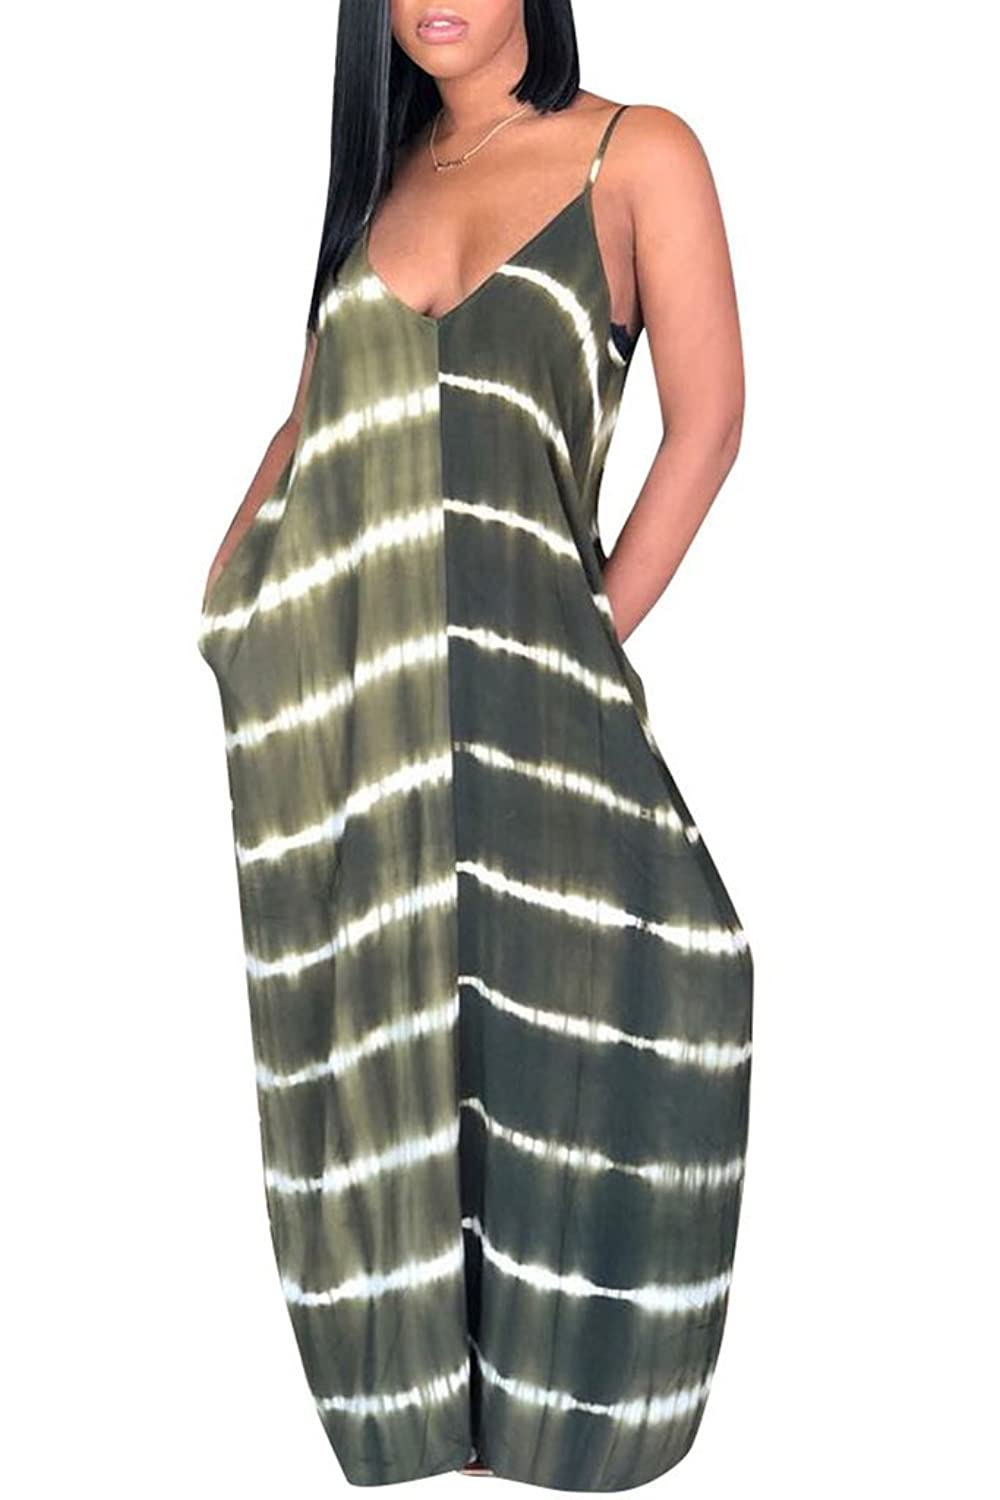 be3199370026f Features: loose beach maxi dress for women with pockets; colorful striped spaghetti  strap long dress; big v neck and backless.